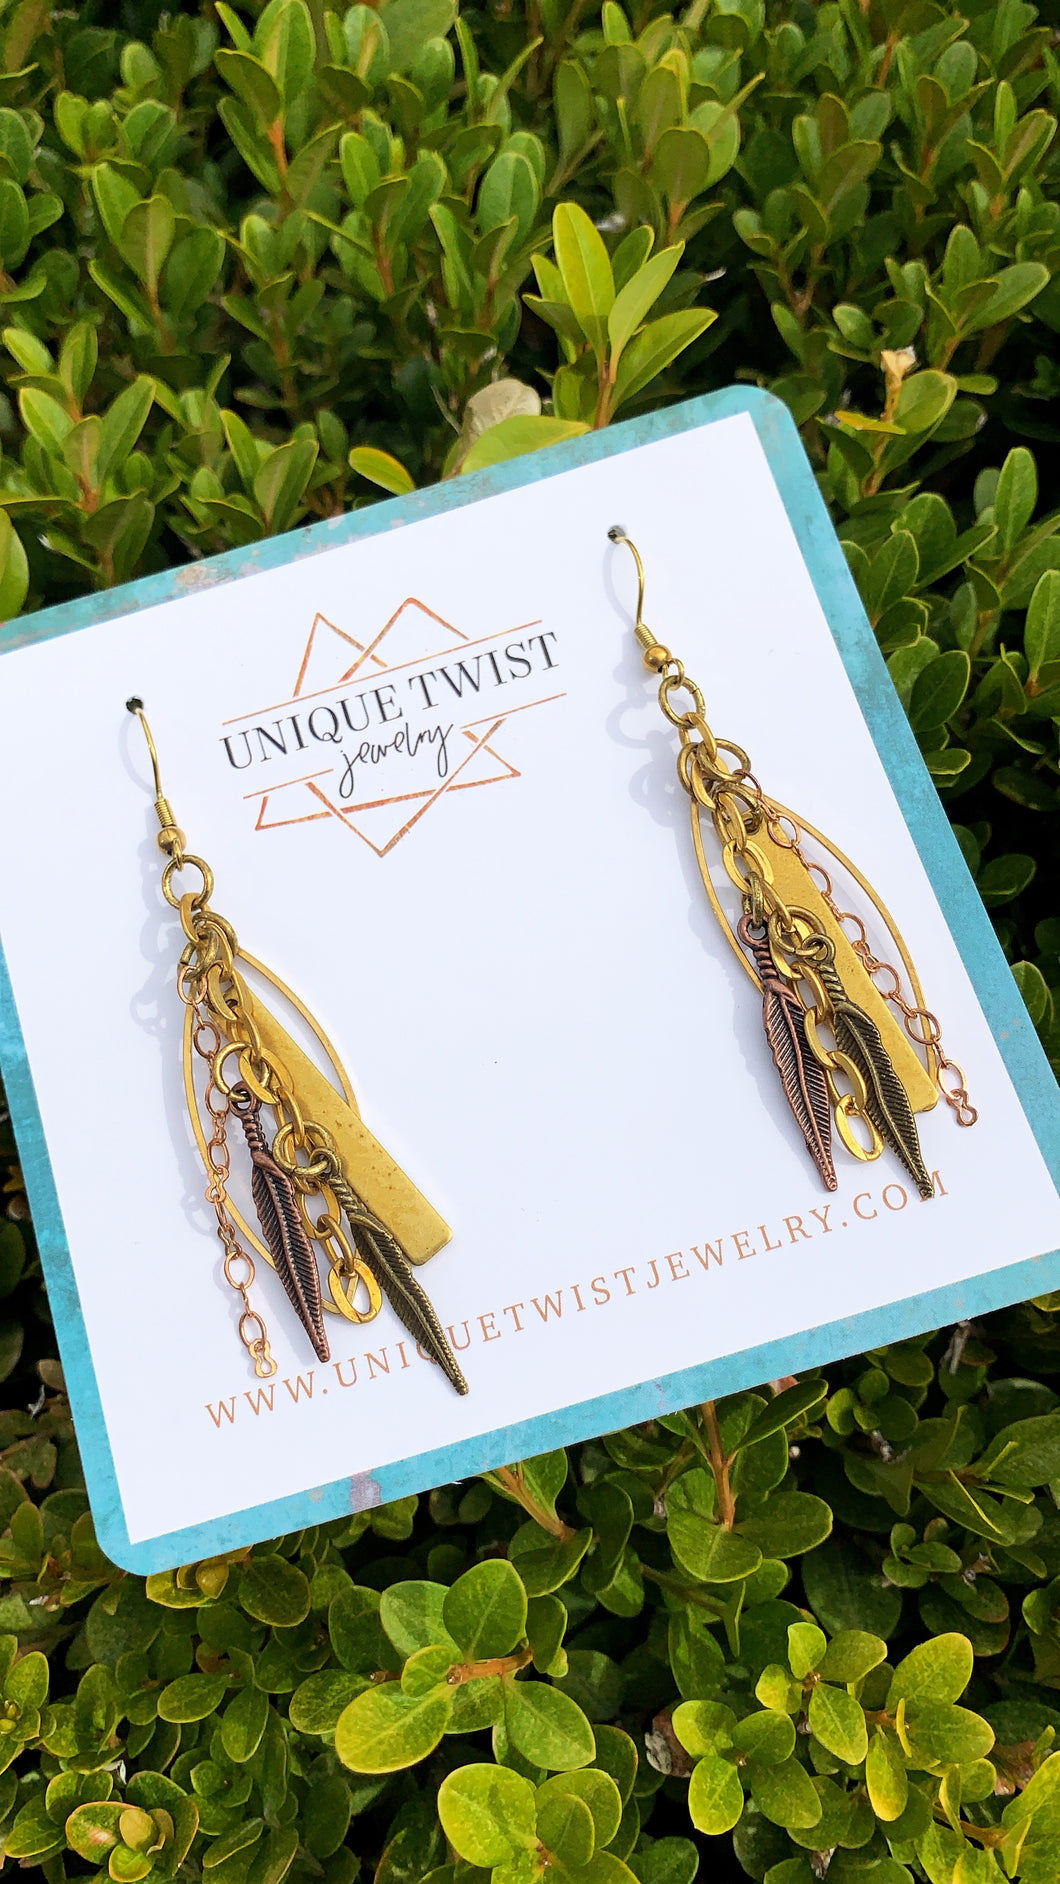 Honoring musician Janis Joplin with our Janis Earrings. Honoring notable women. Handmade jewelry by Unique Twist Jewelry.